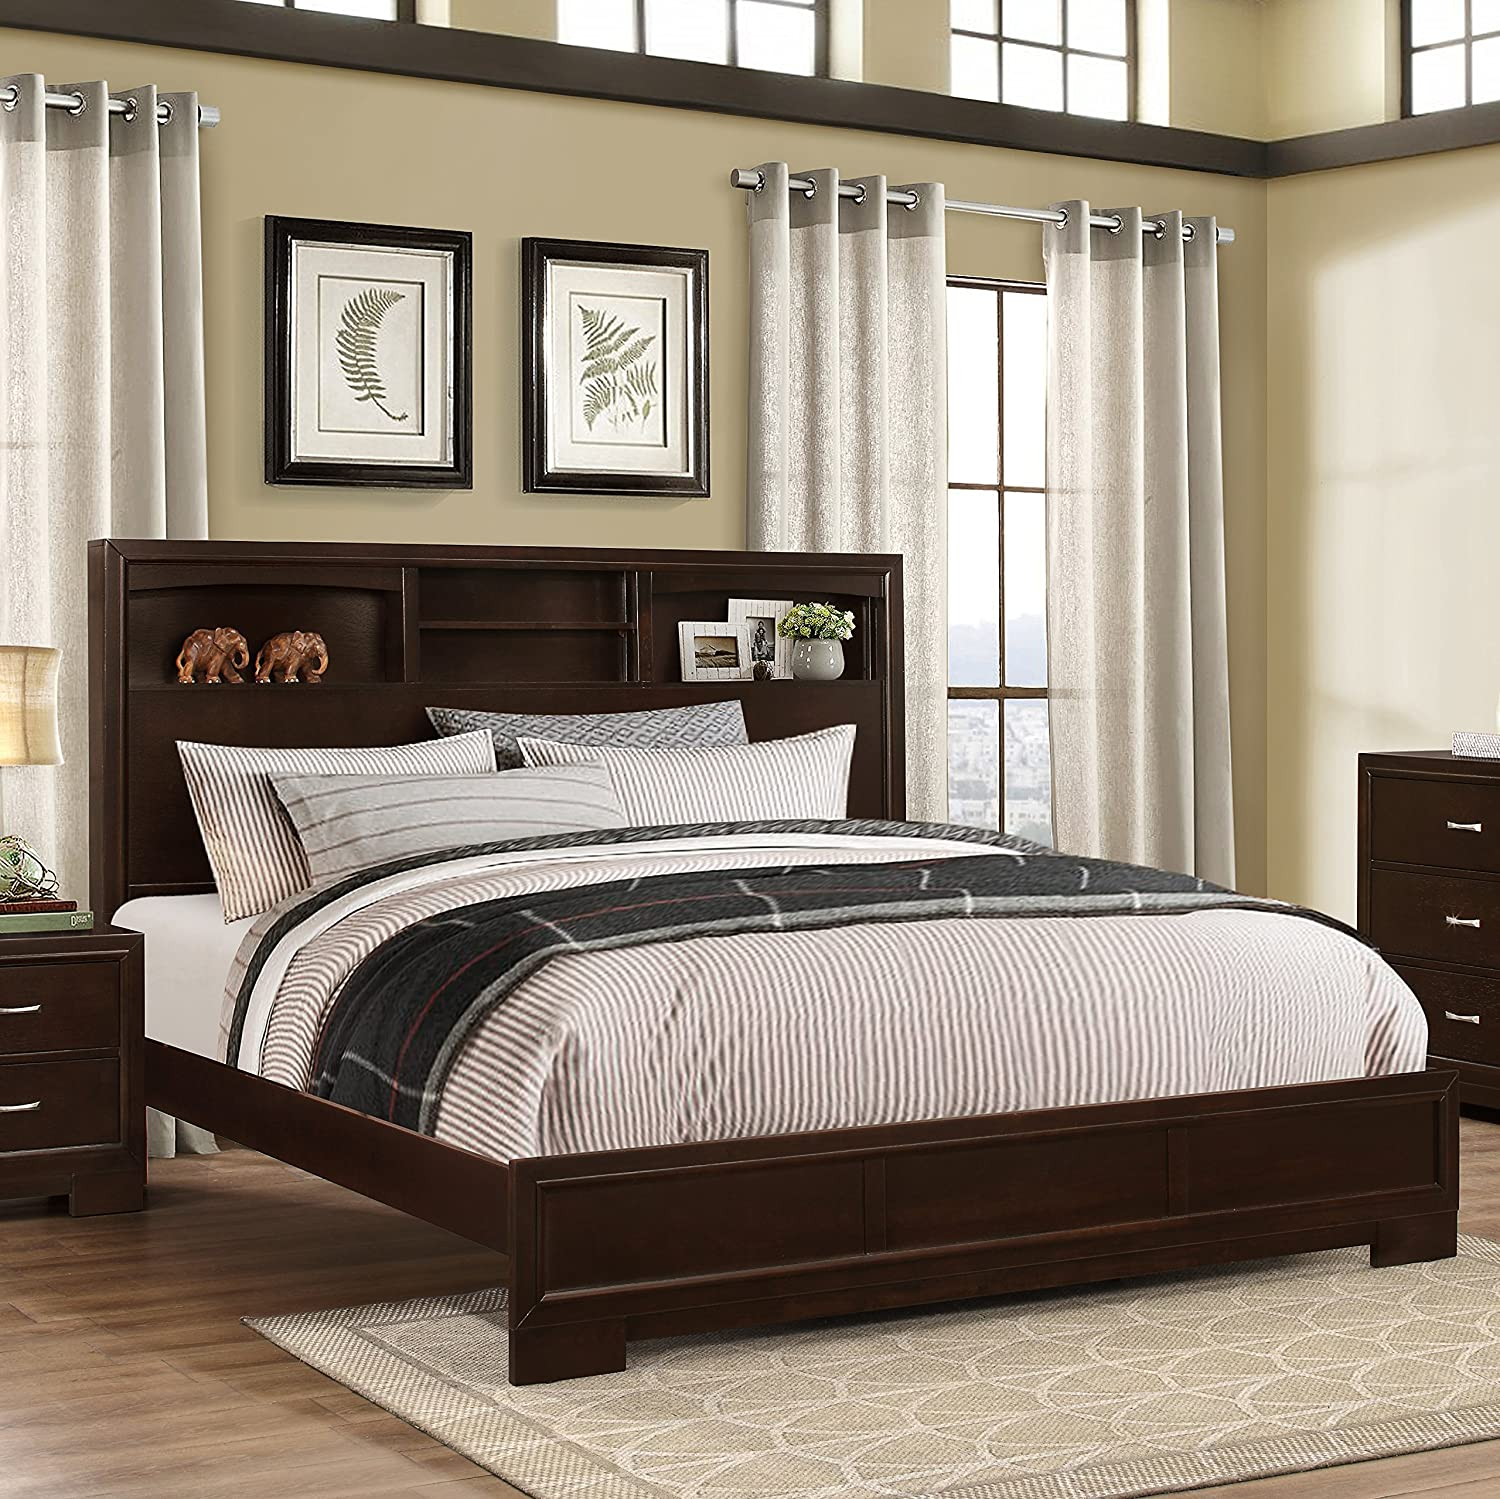 packages set change package product click american piece dimora upholstered bedroom bed queen image to white room